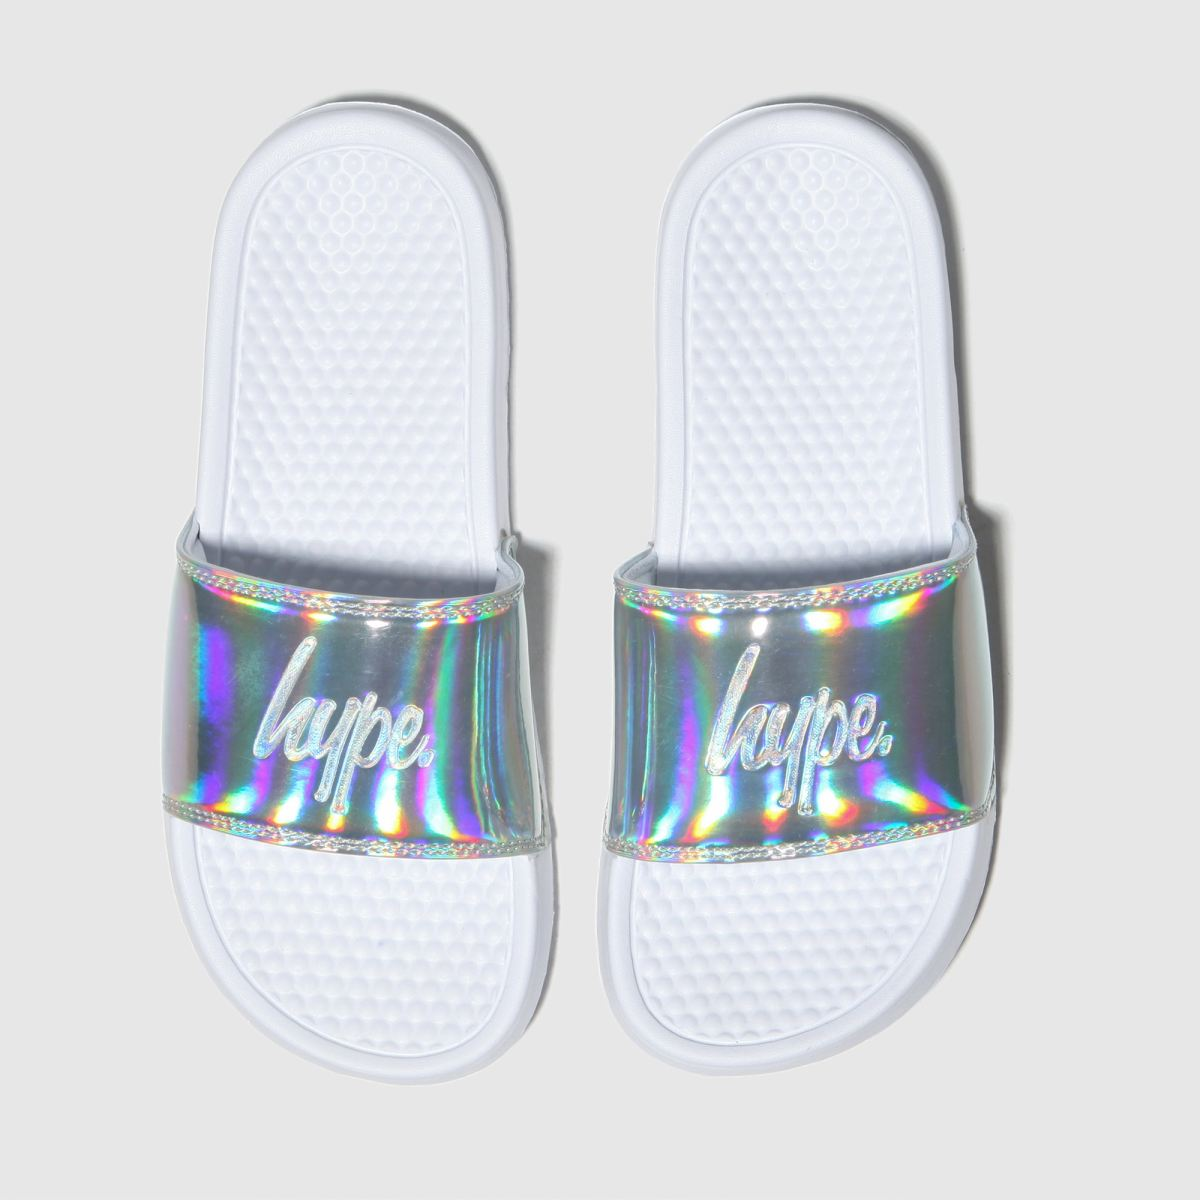 Hype White & Silver Holographic Sliders Sandals Junior